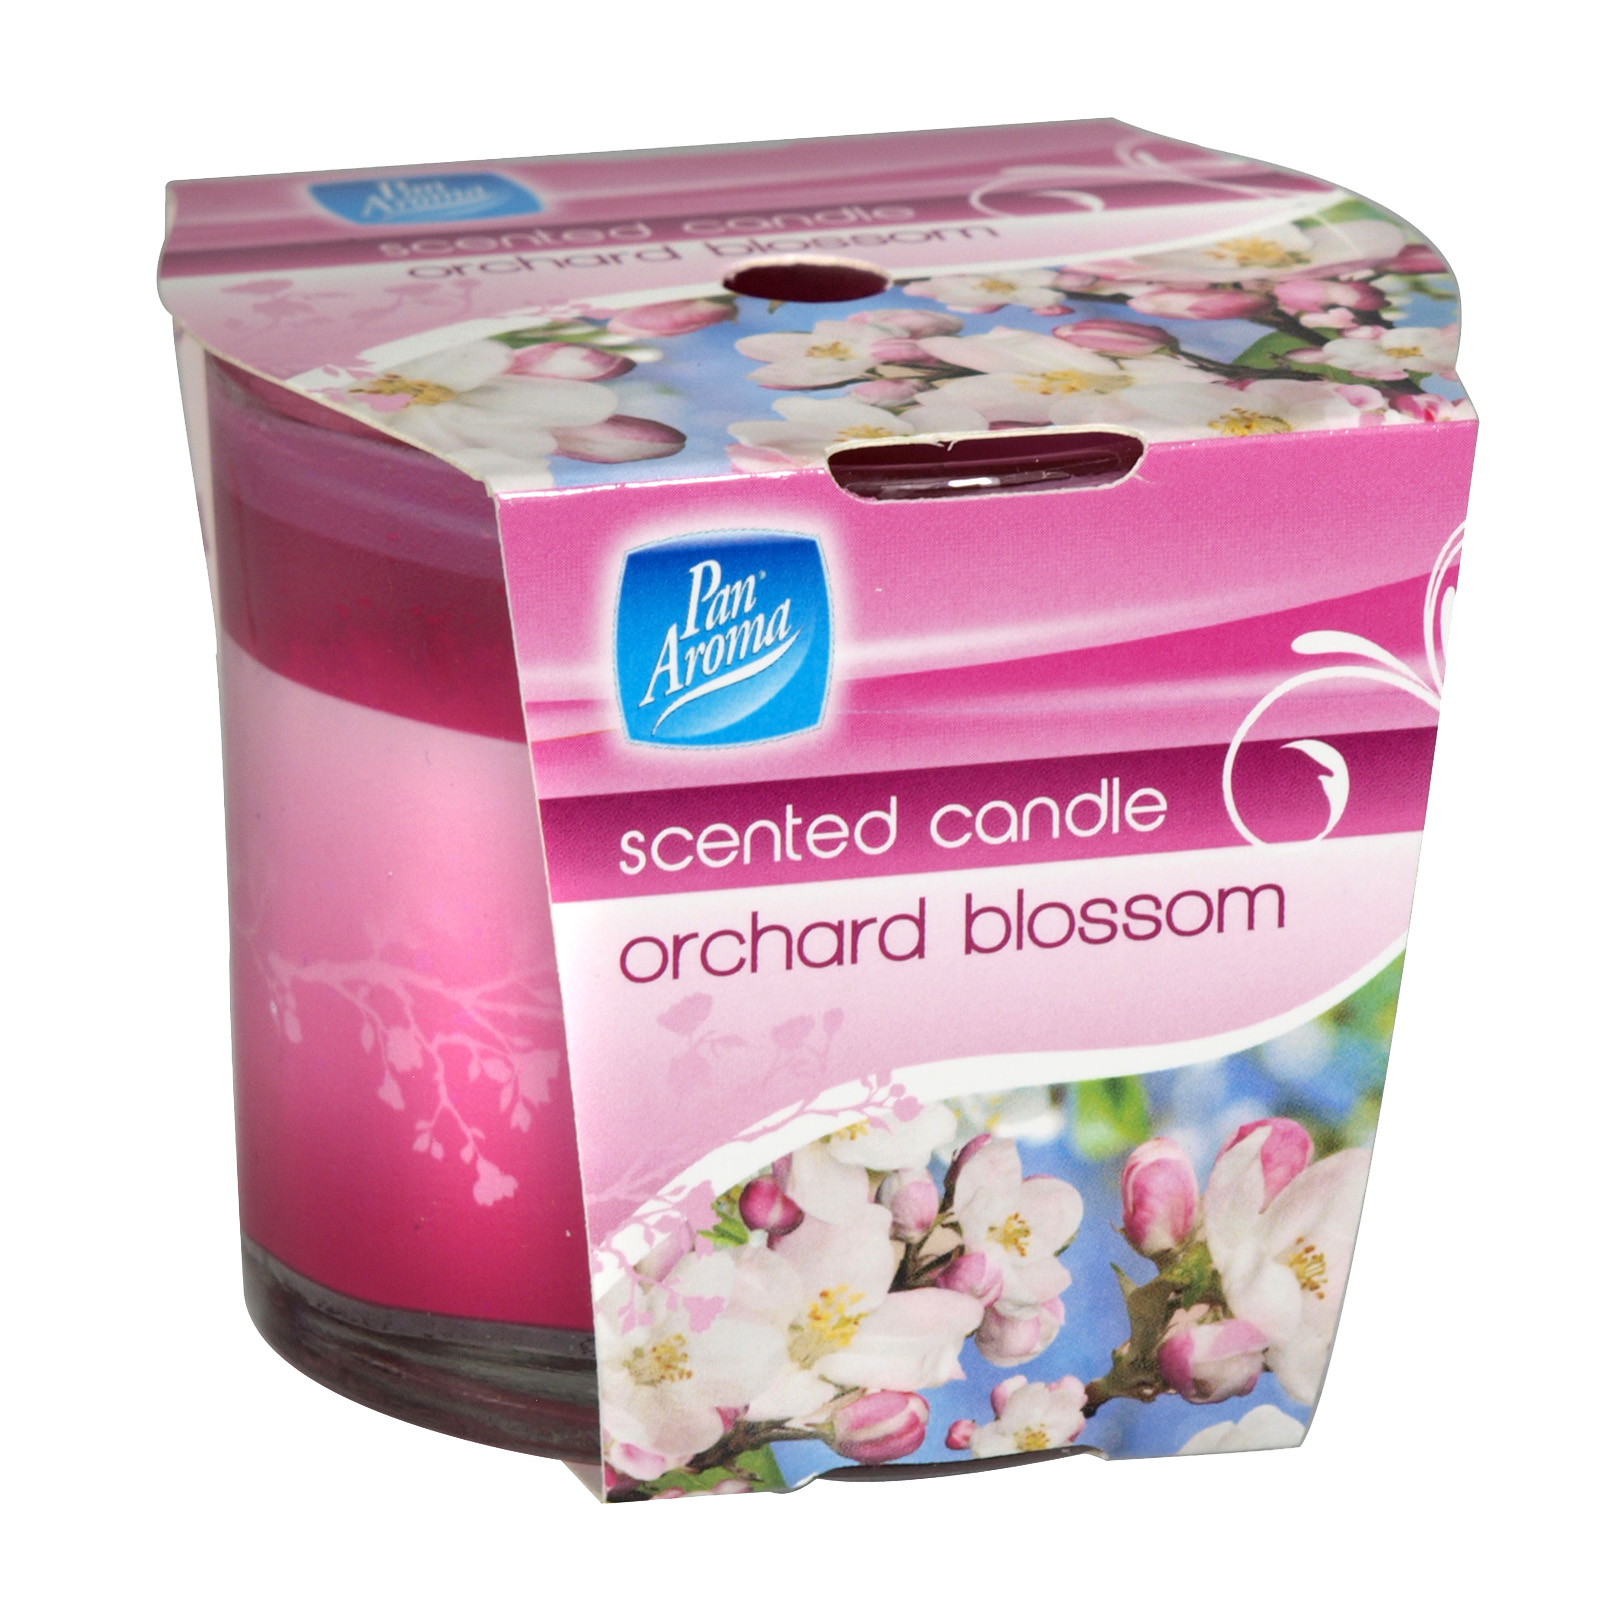 PAN AROMA CANDLE ORCHARD BLOSSOM